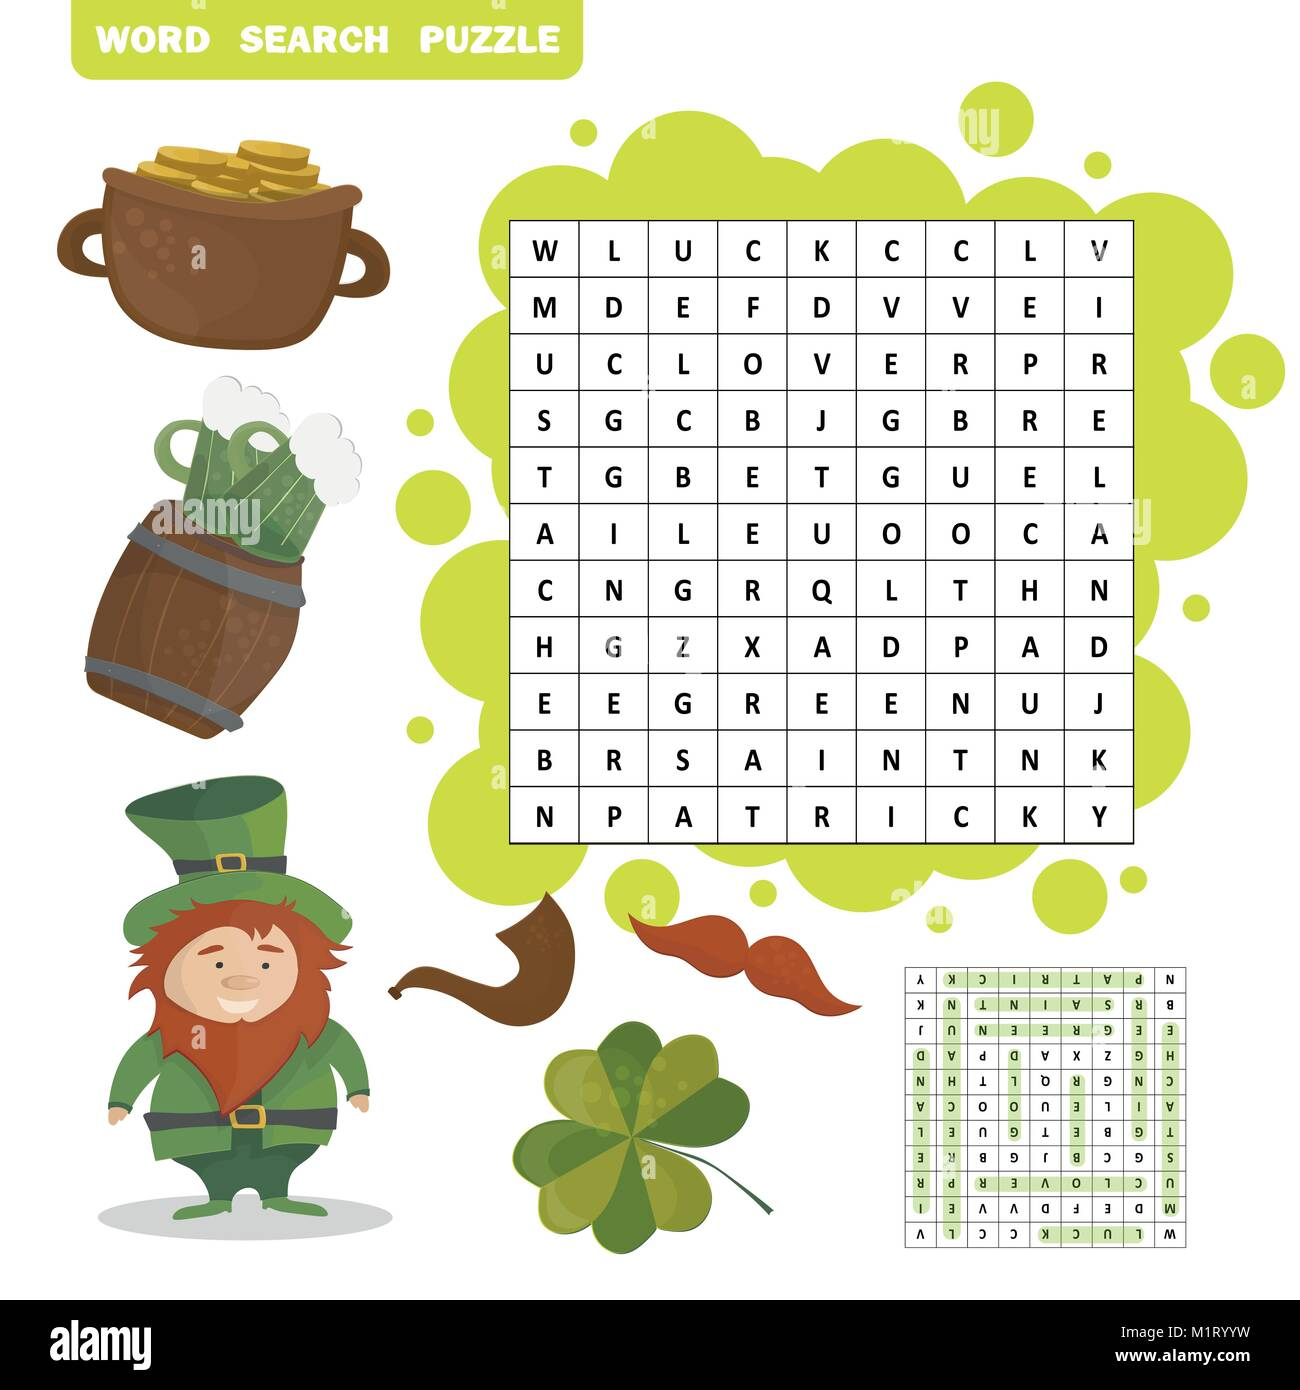 Patricks Day holiday themed word search puzzle - Answer included - Stock Vector